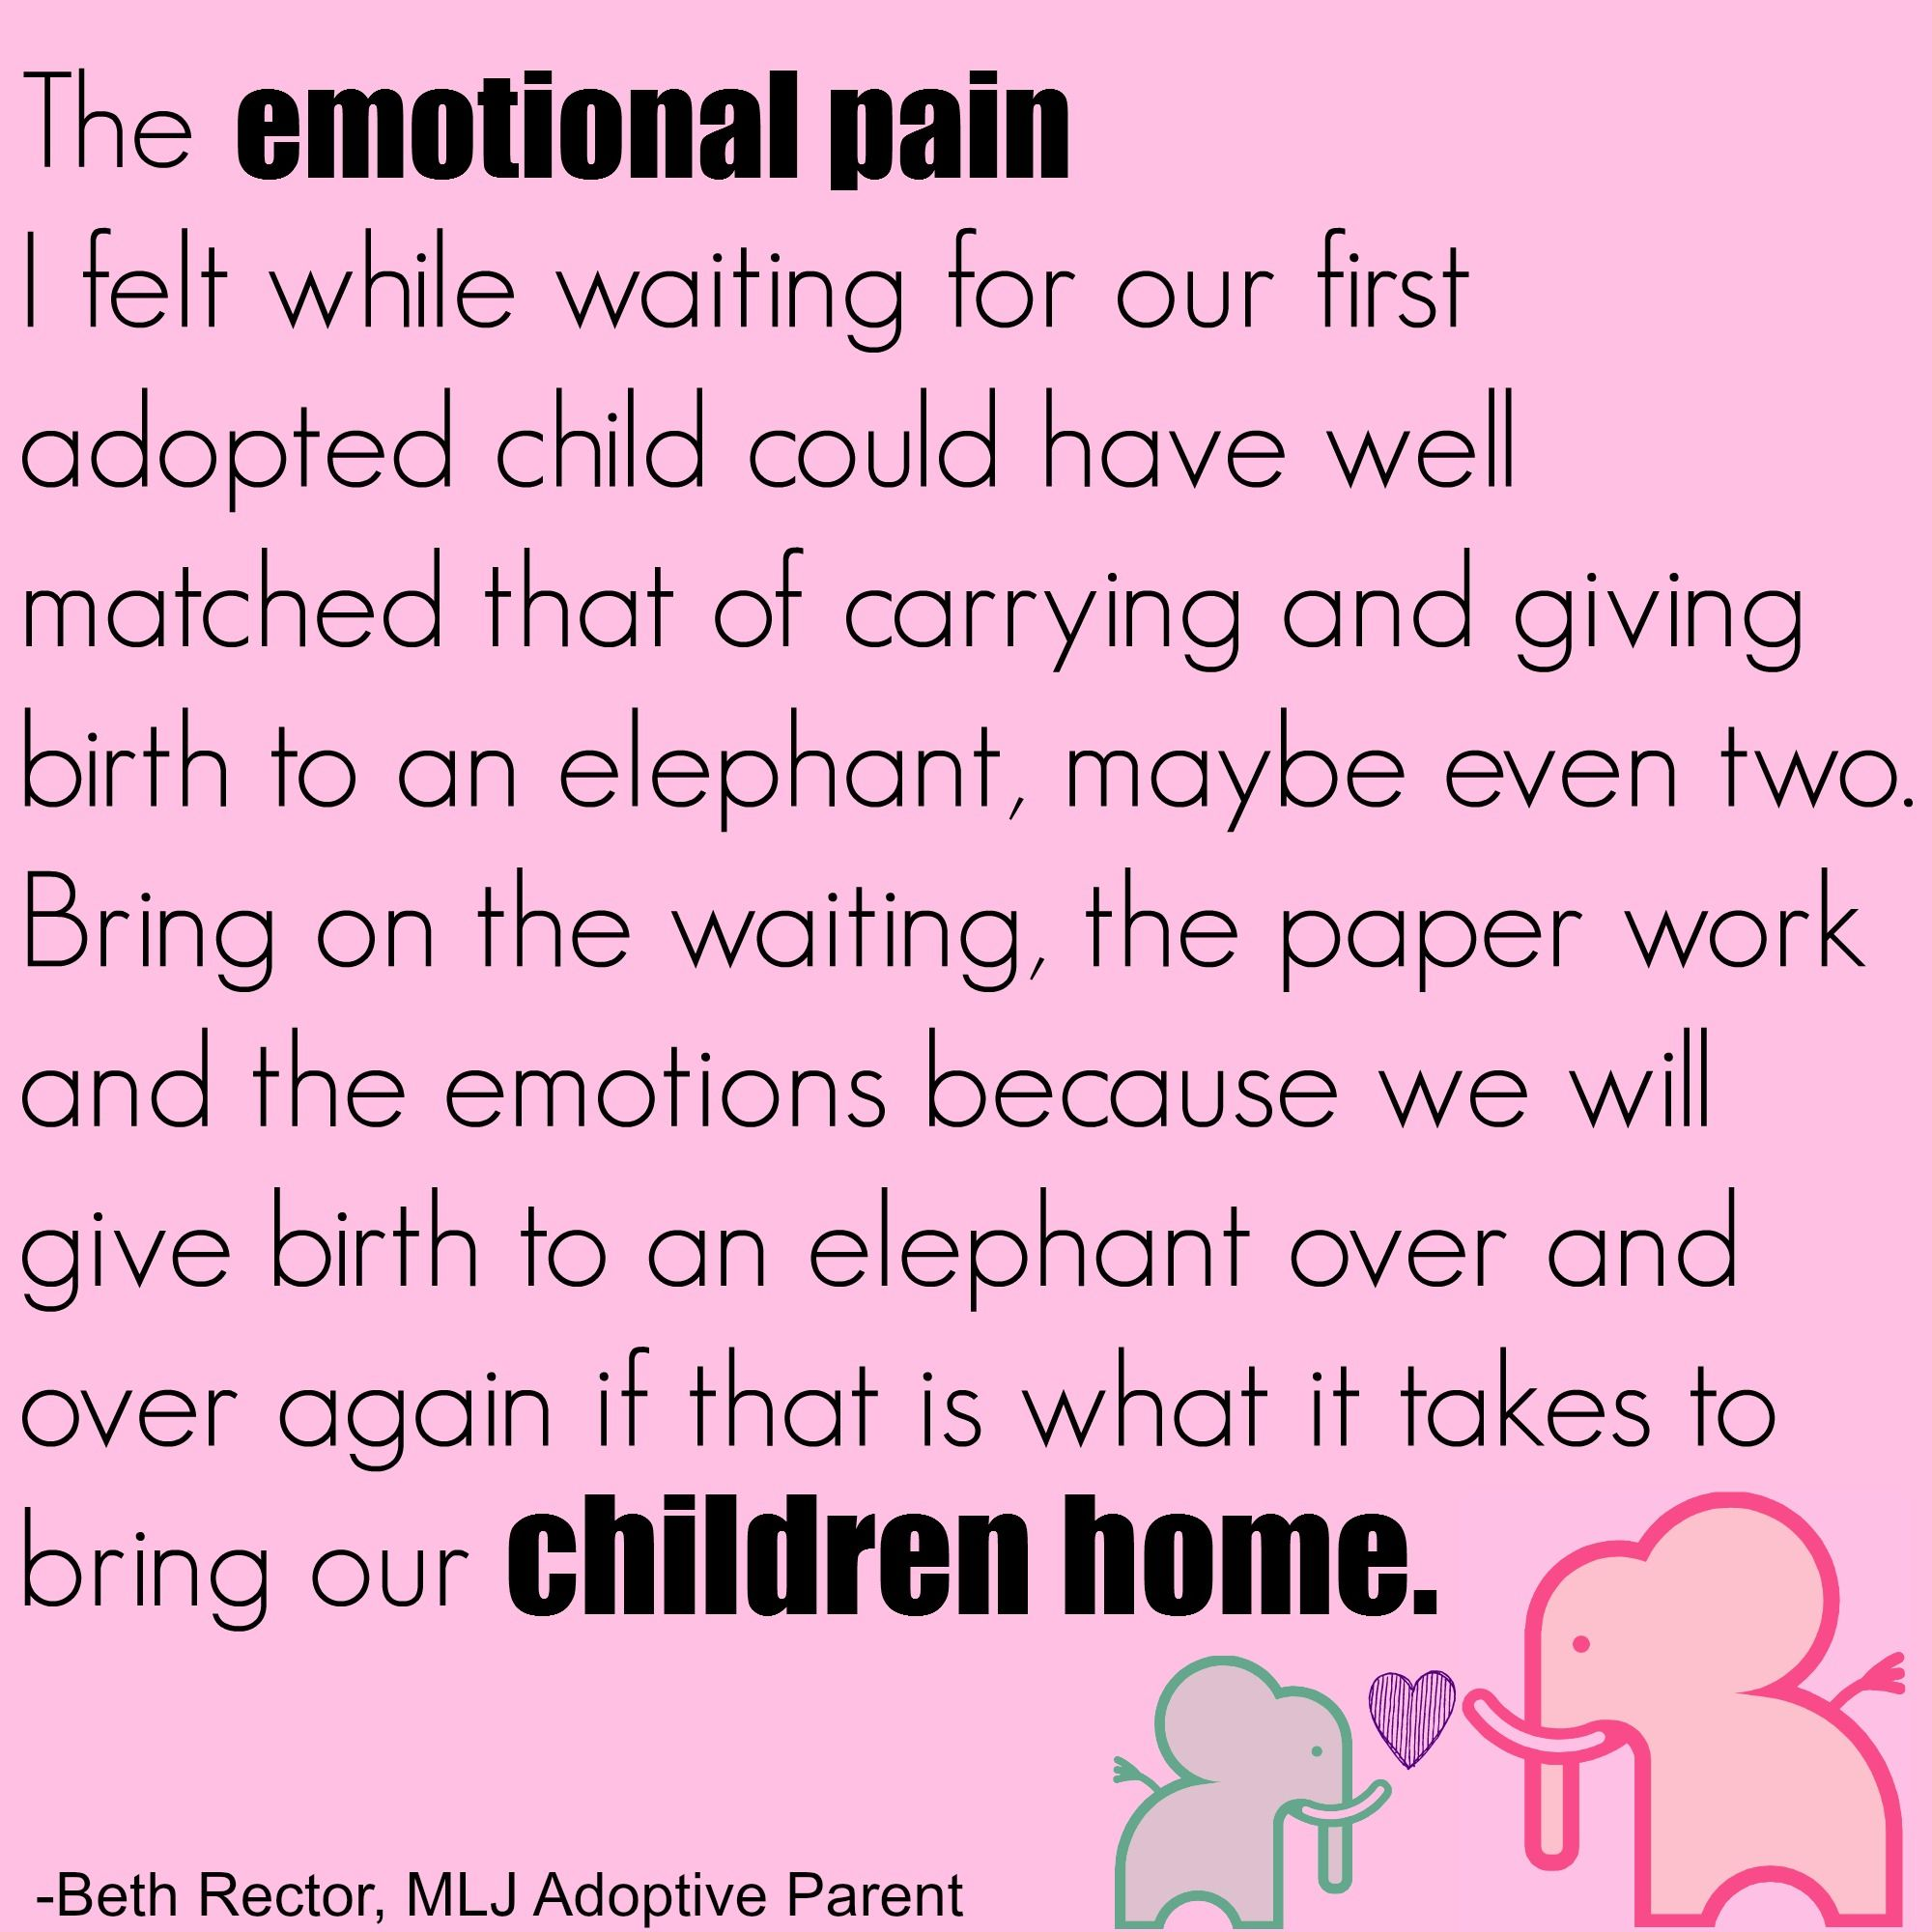 Giving Birth To An Elephant Adoption Quotes Adoption Foster Care Adoption